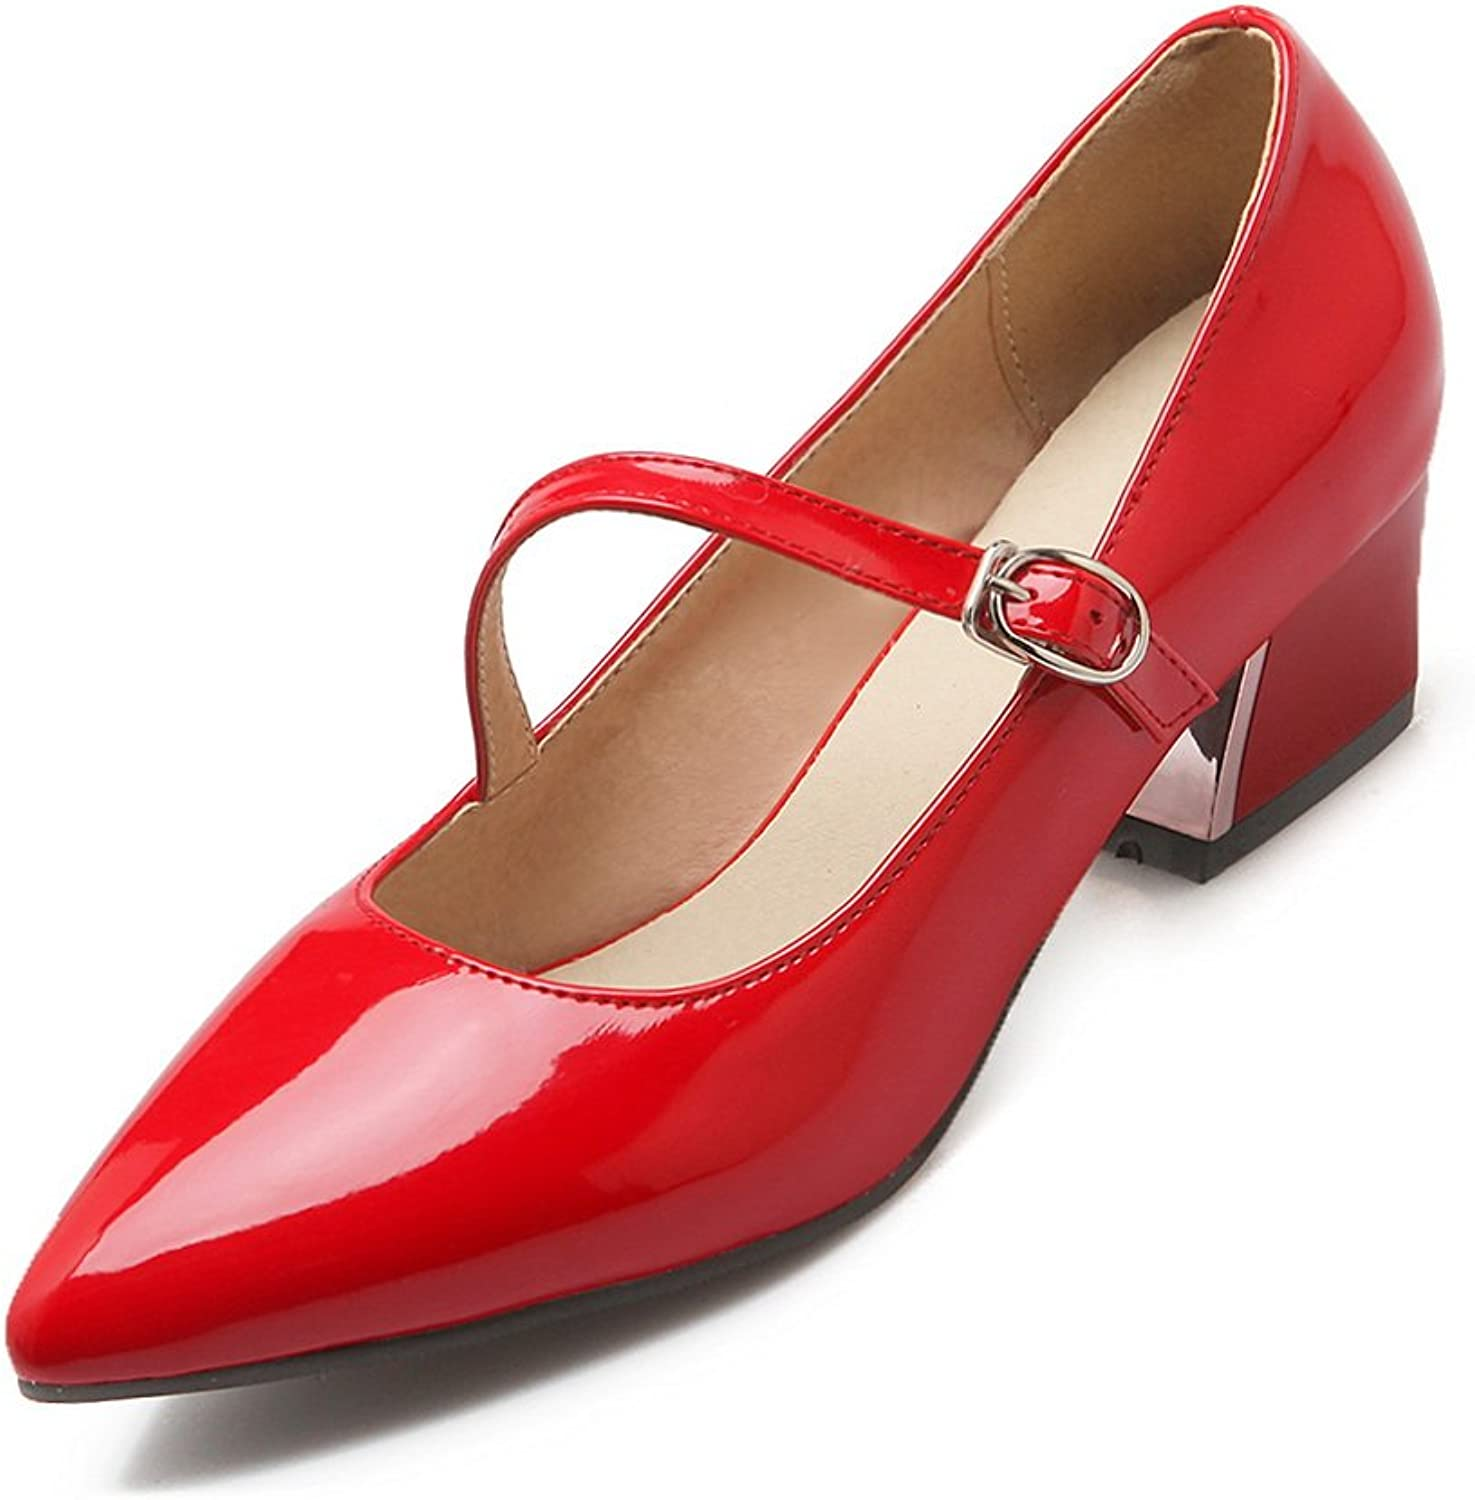 BalaMasa Womens Slip-Resistant Buckle Pointed-Toe Patent-Leather Pumps-shoes